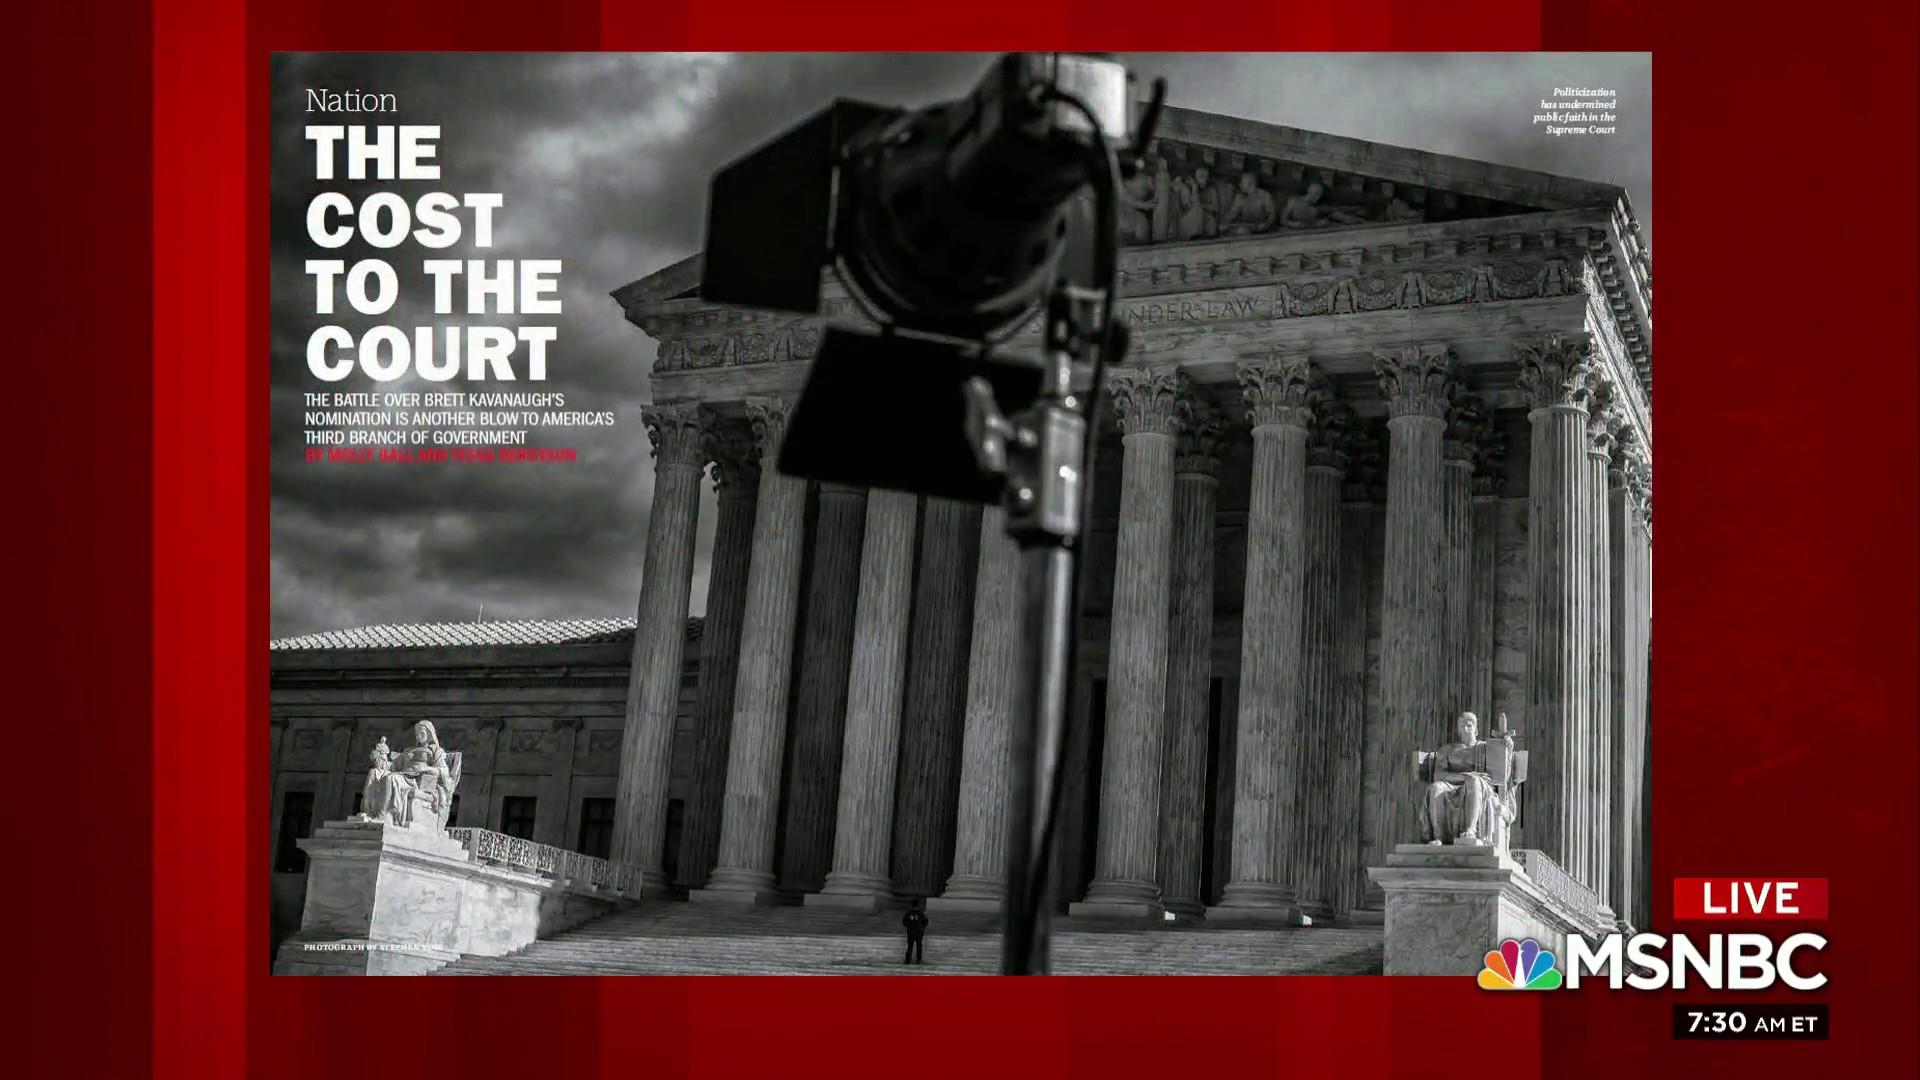 Time Magazine looks at 'The Cost to the Court'